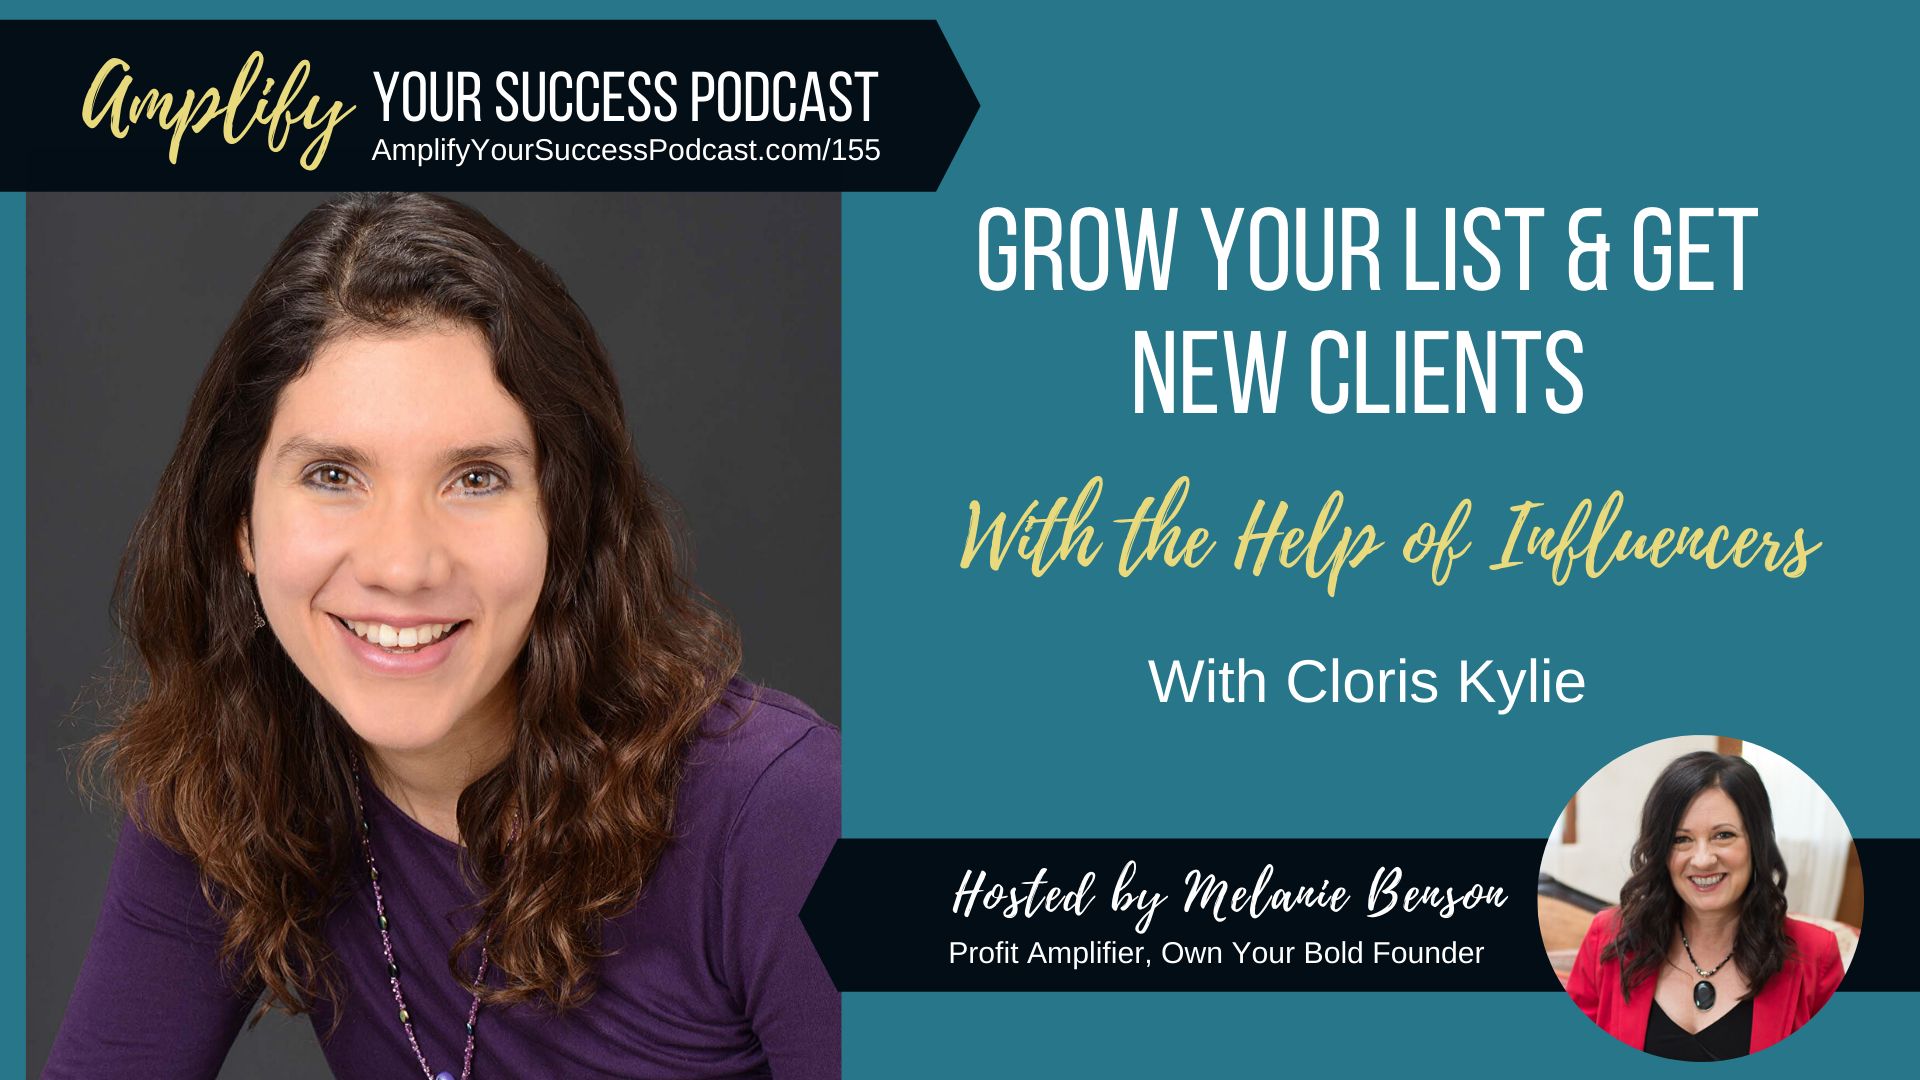 How to Grow Your List and Get New Clients with The Help of Influencers with Cloris Kylie